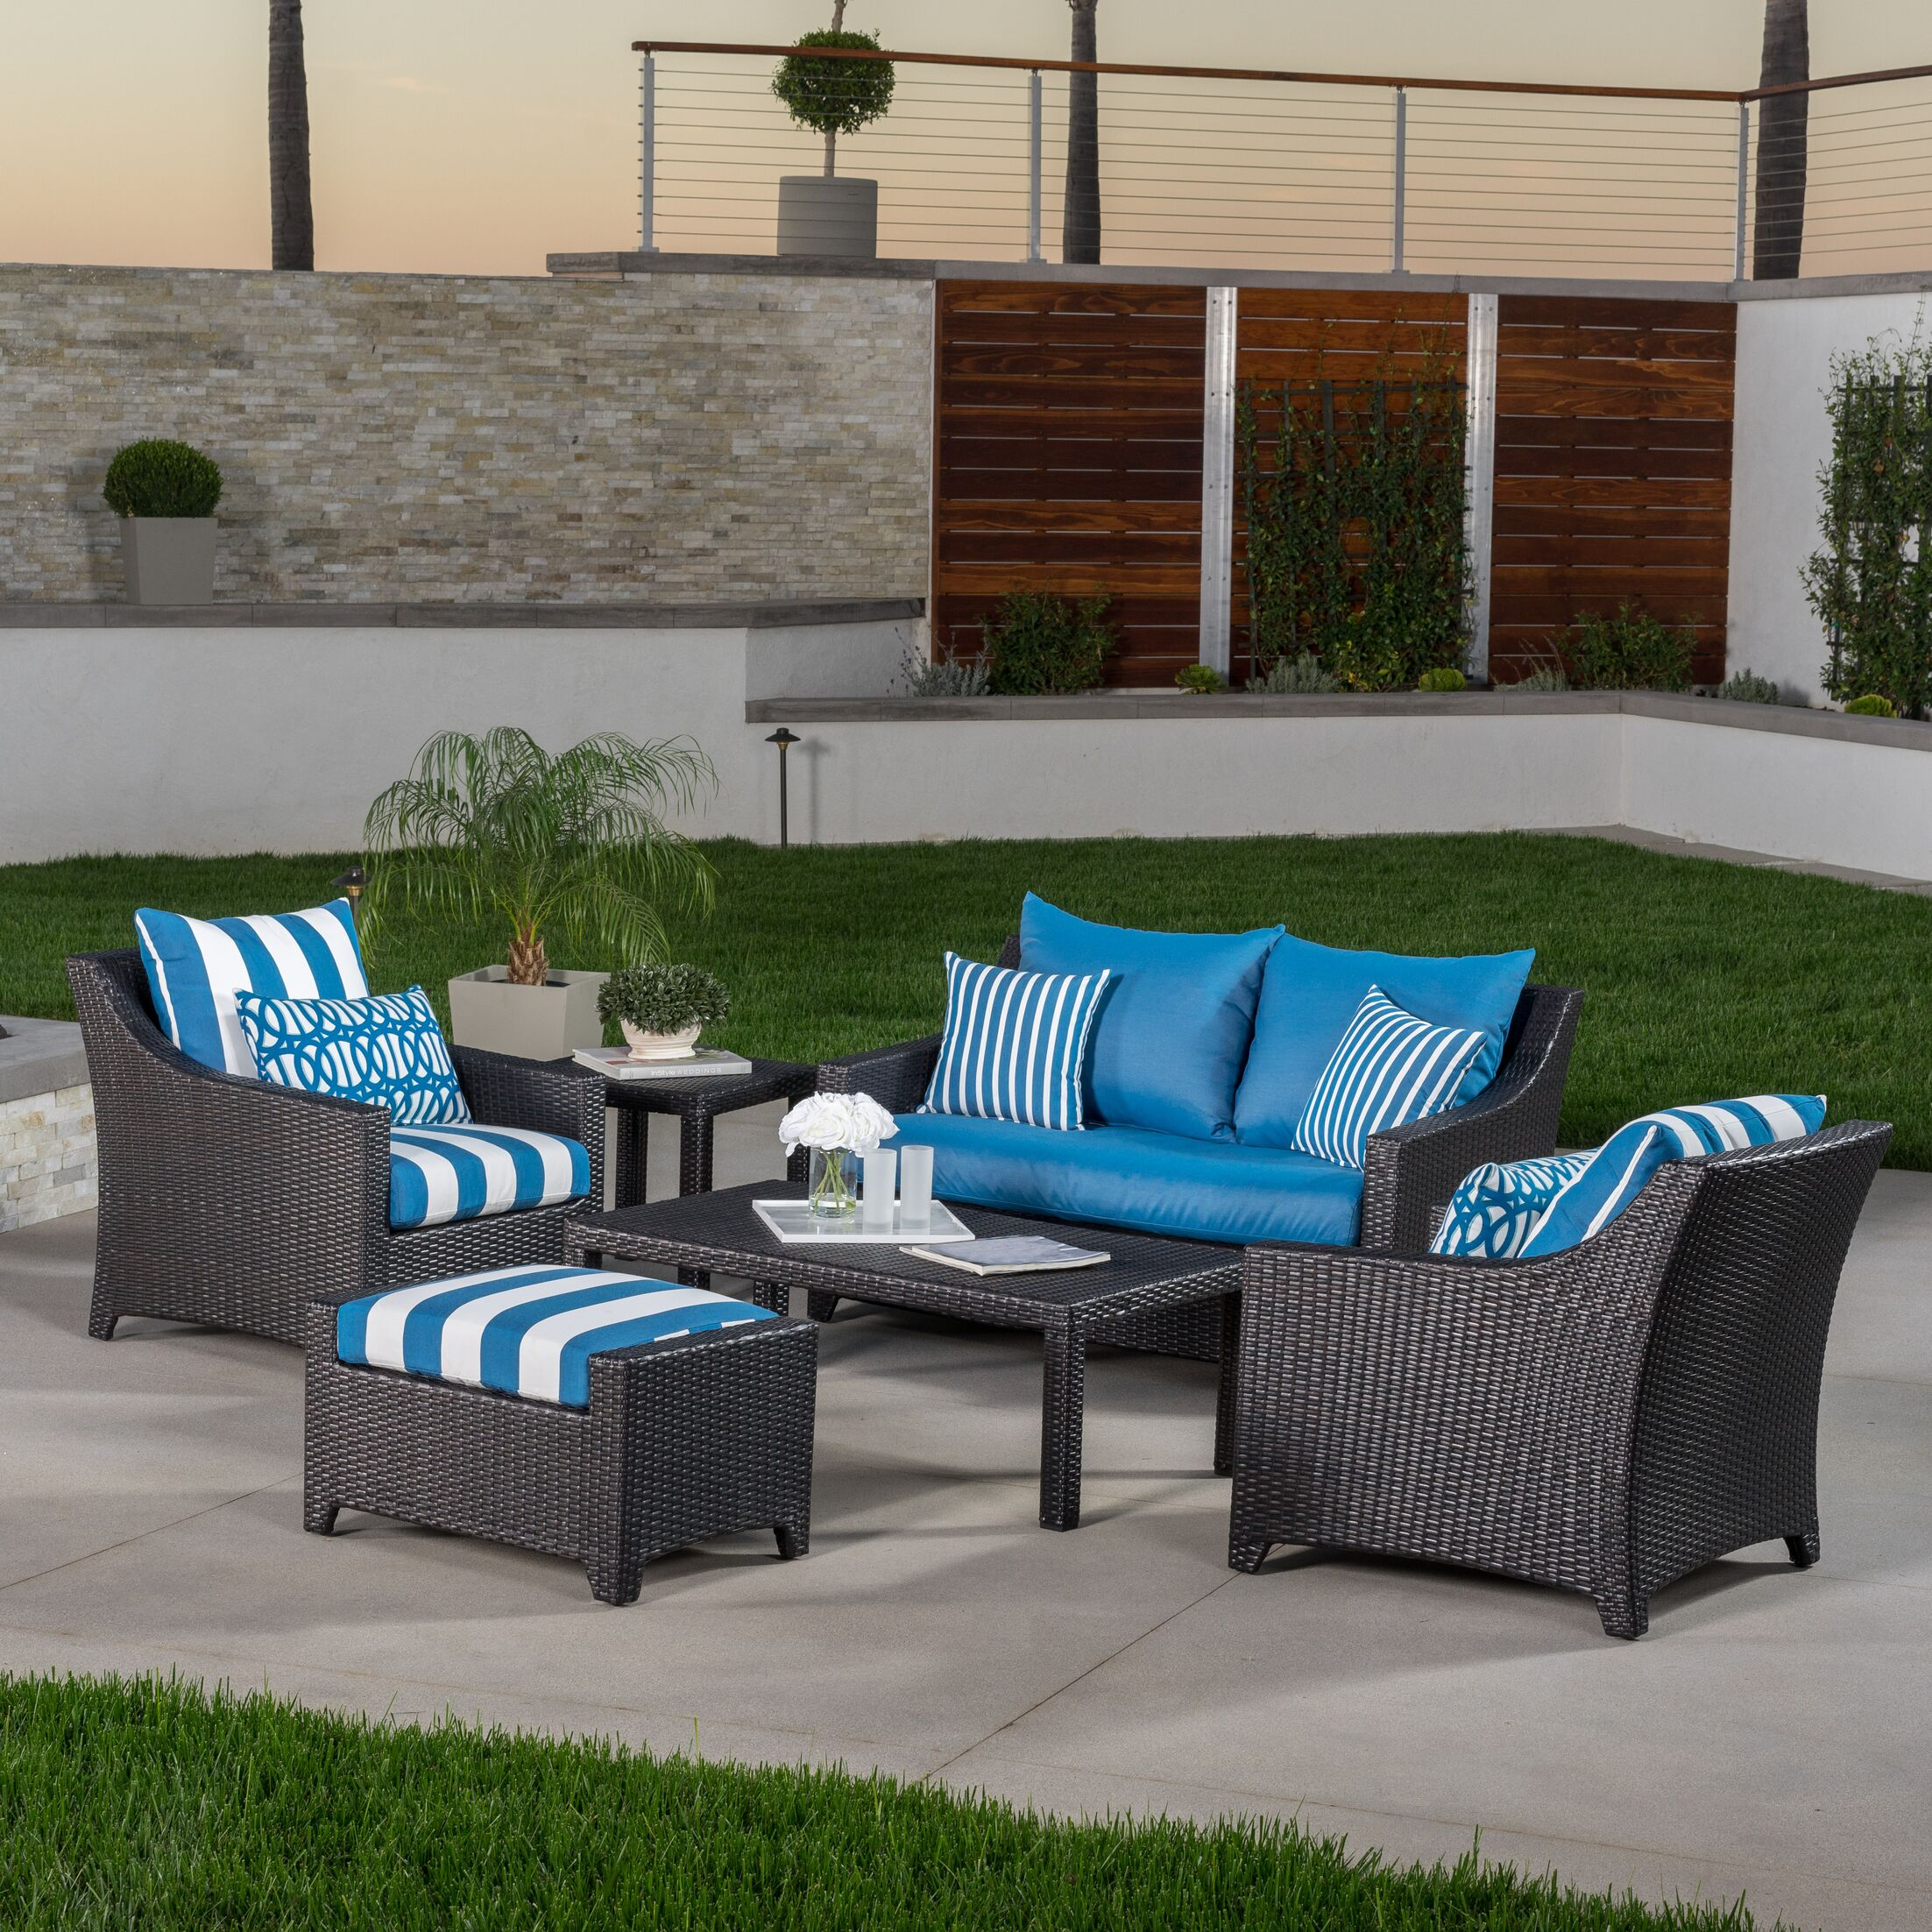 Northridge 6 Piece Rattan Sunbrella Sofa Set with Cushions Fabric: Regatta Blue